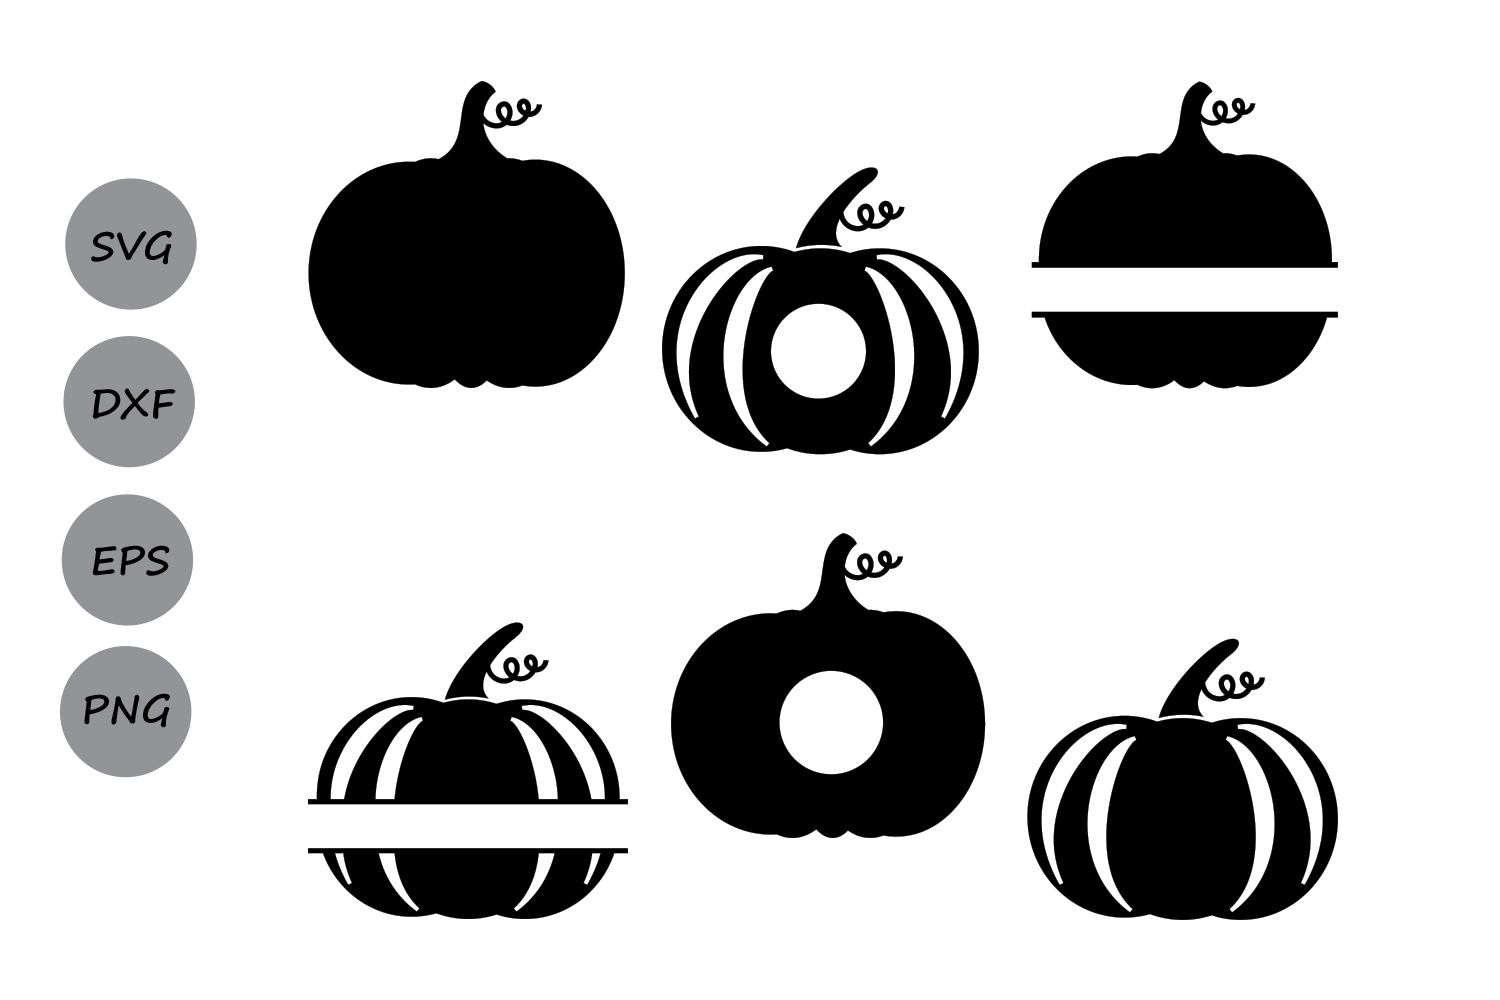 pumpkin images halloween pumpkin face icon on black and white vector images pumpkin